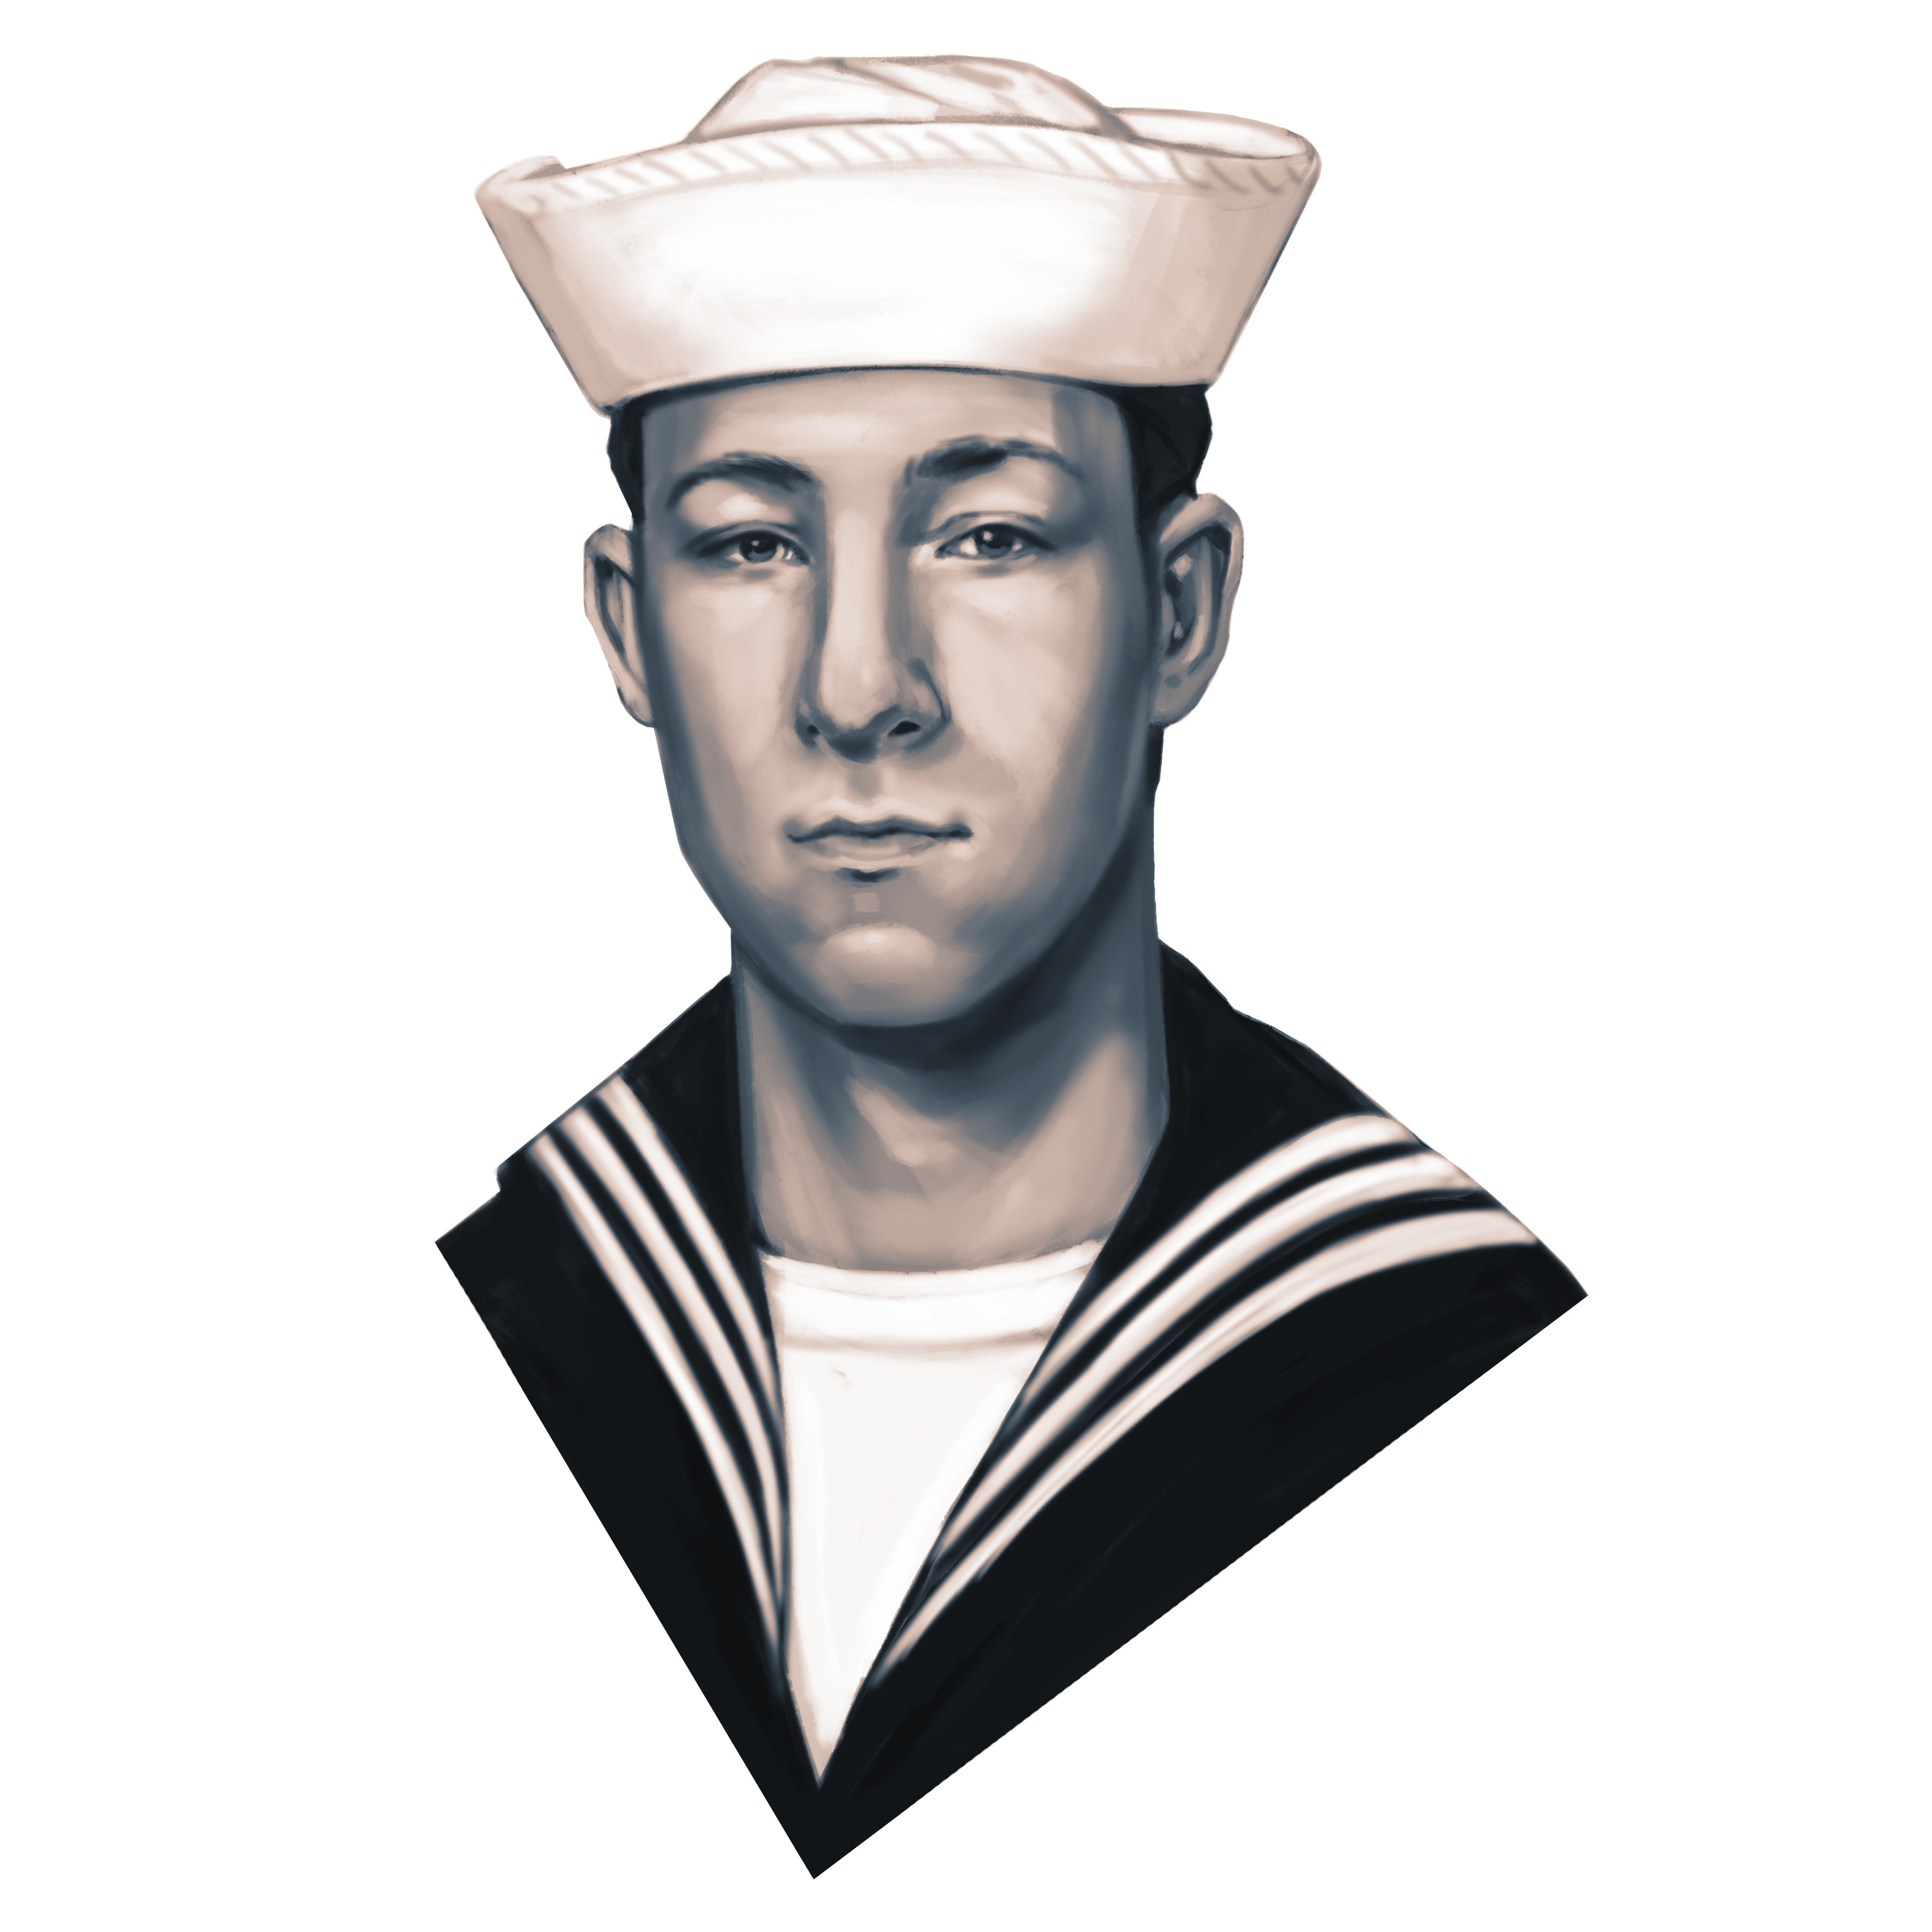 Petty Officer Third Class Kenneth Aaron Smith, 22